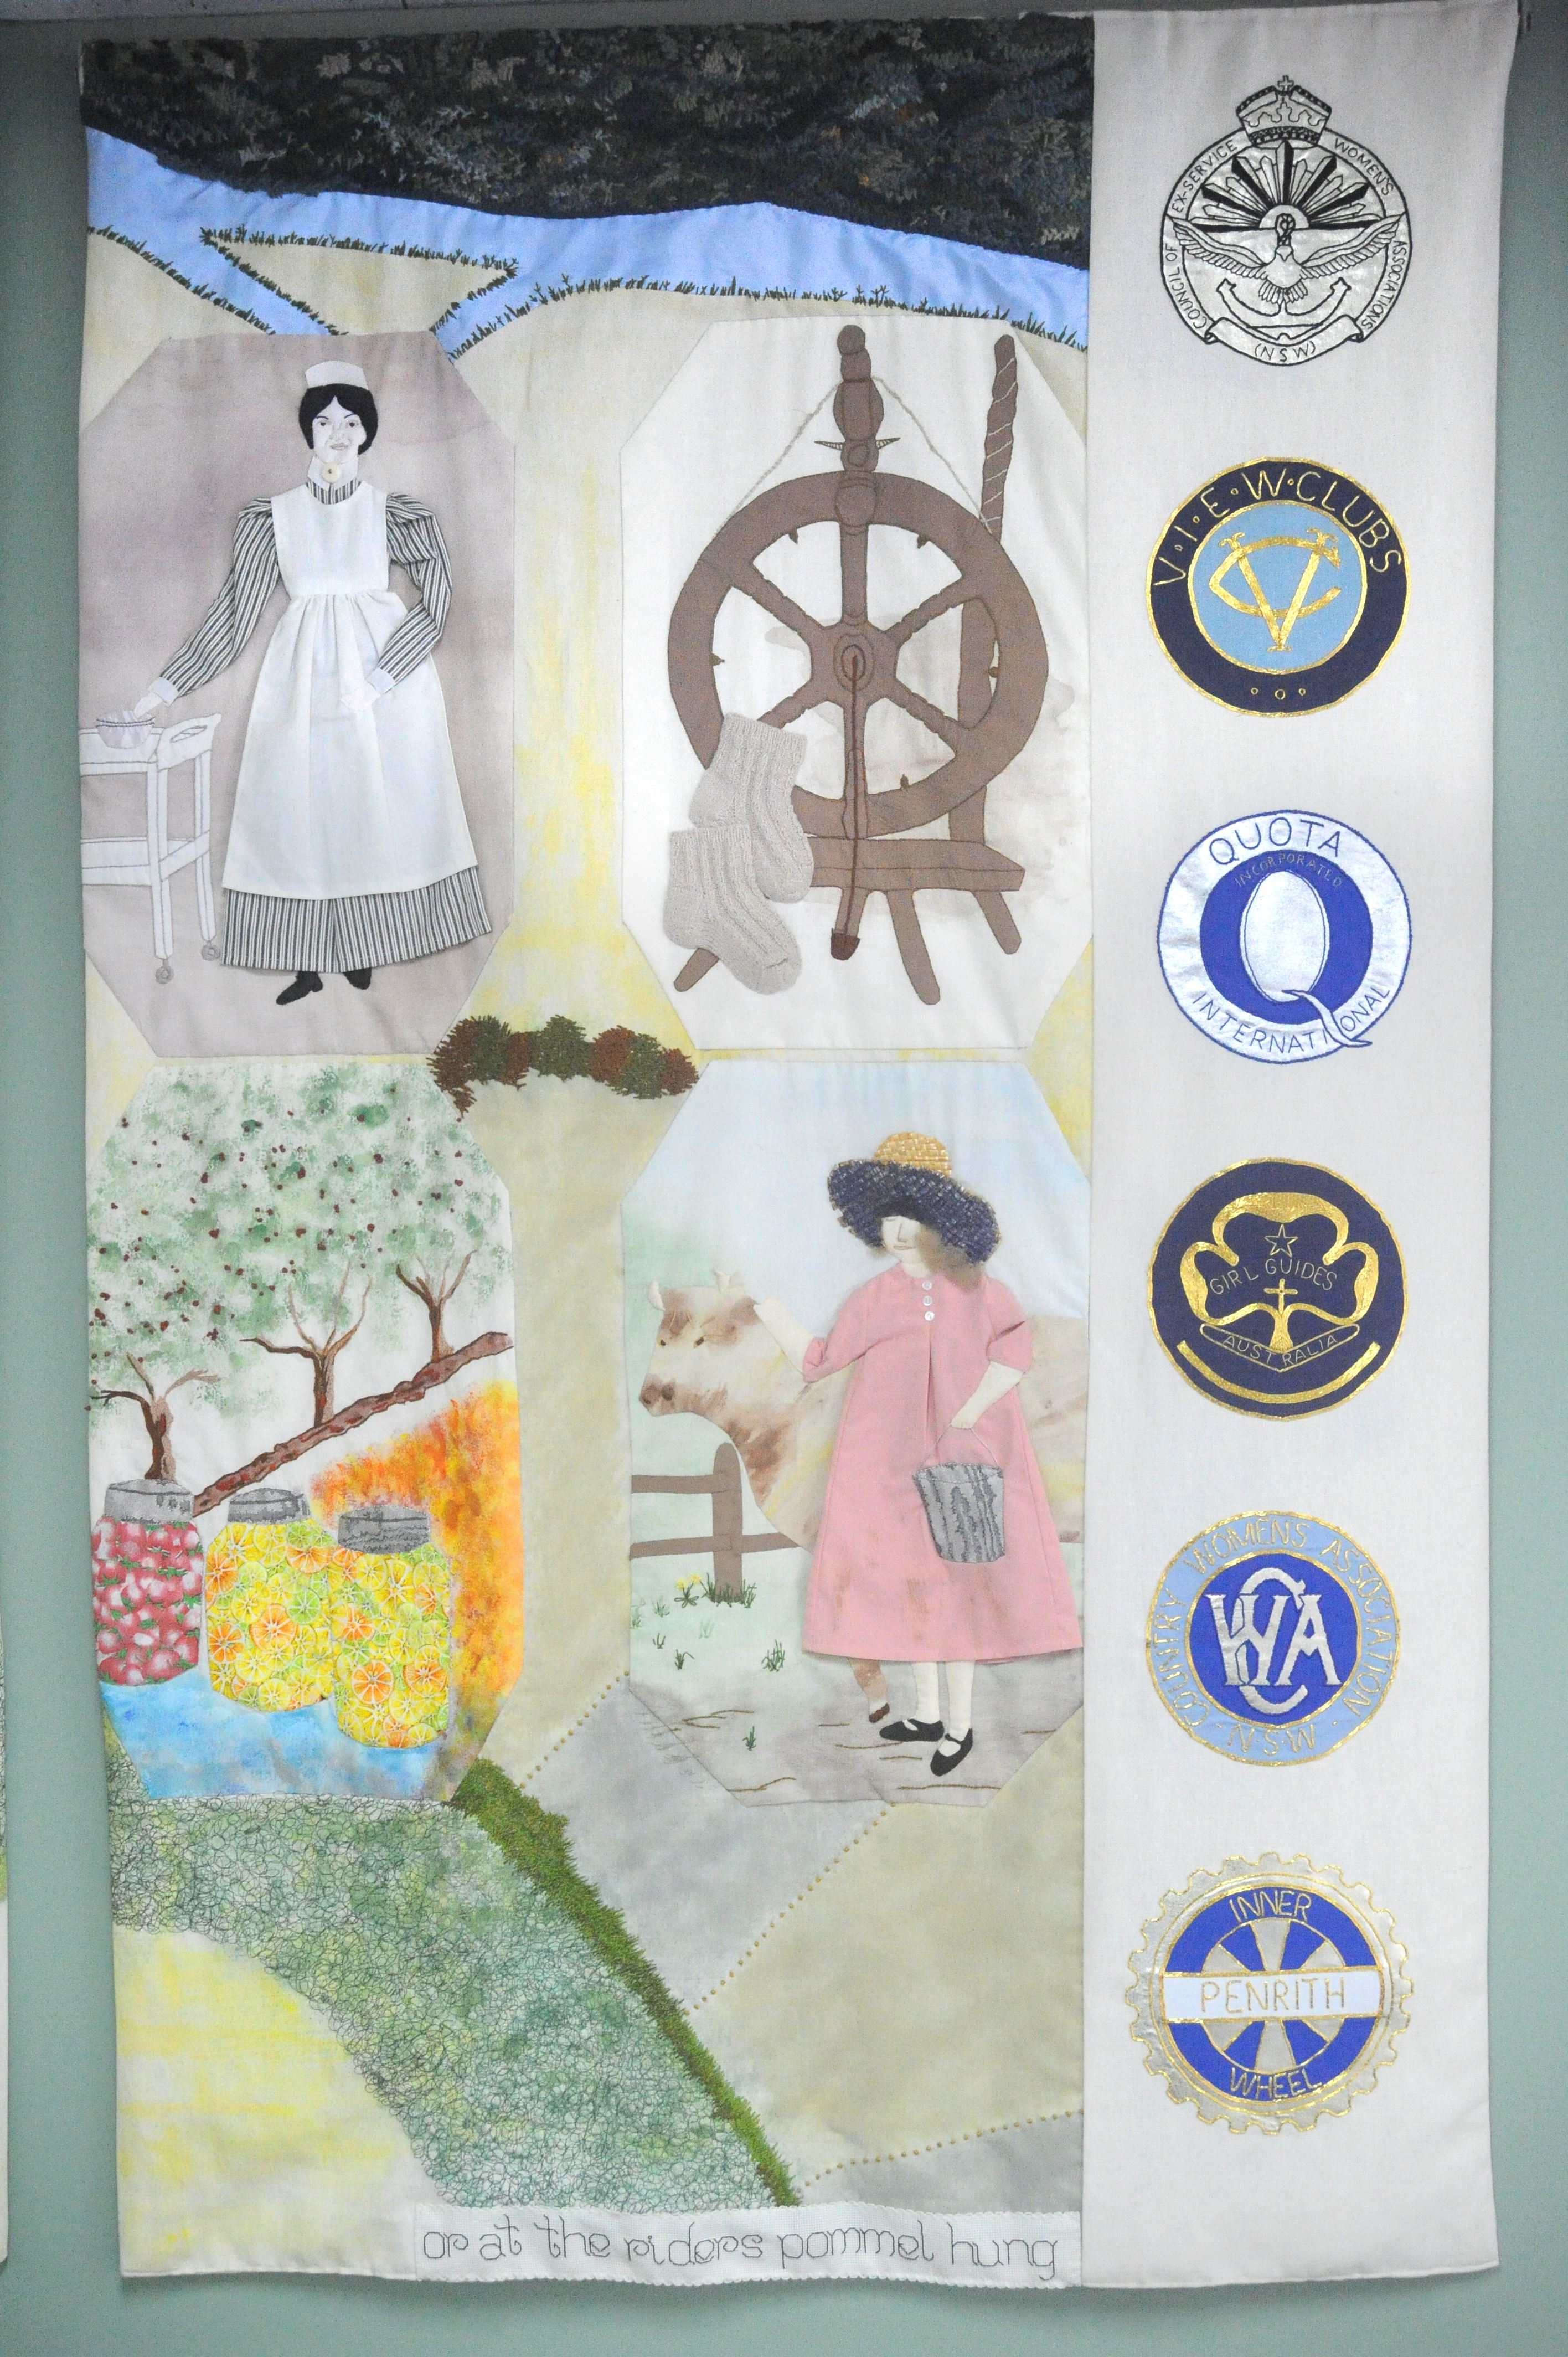 Not just stitches panel 6 - women at work in nursing, handicrafts, kitchen and on the farm and badges representing women's organisations in the local area.